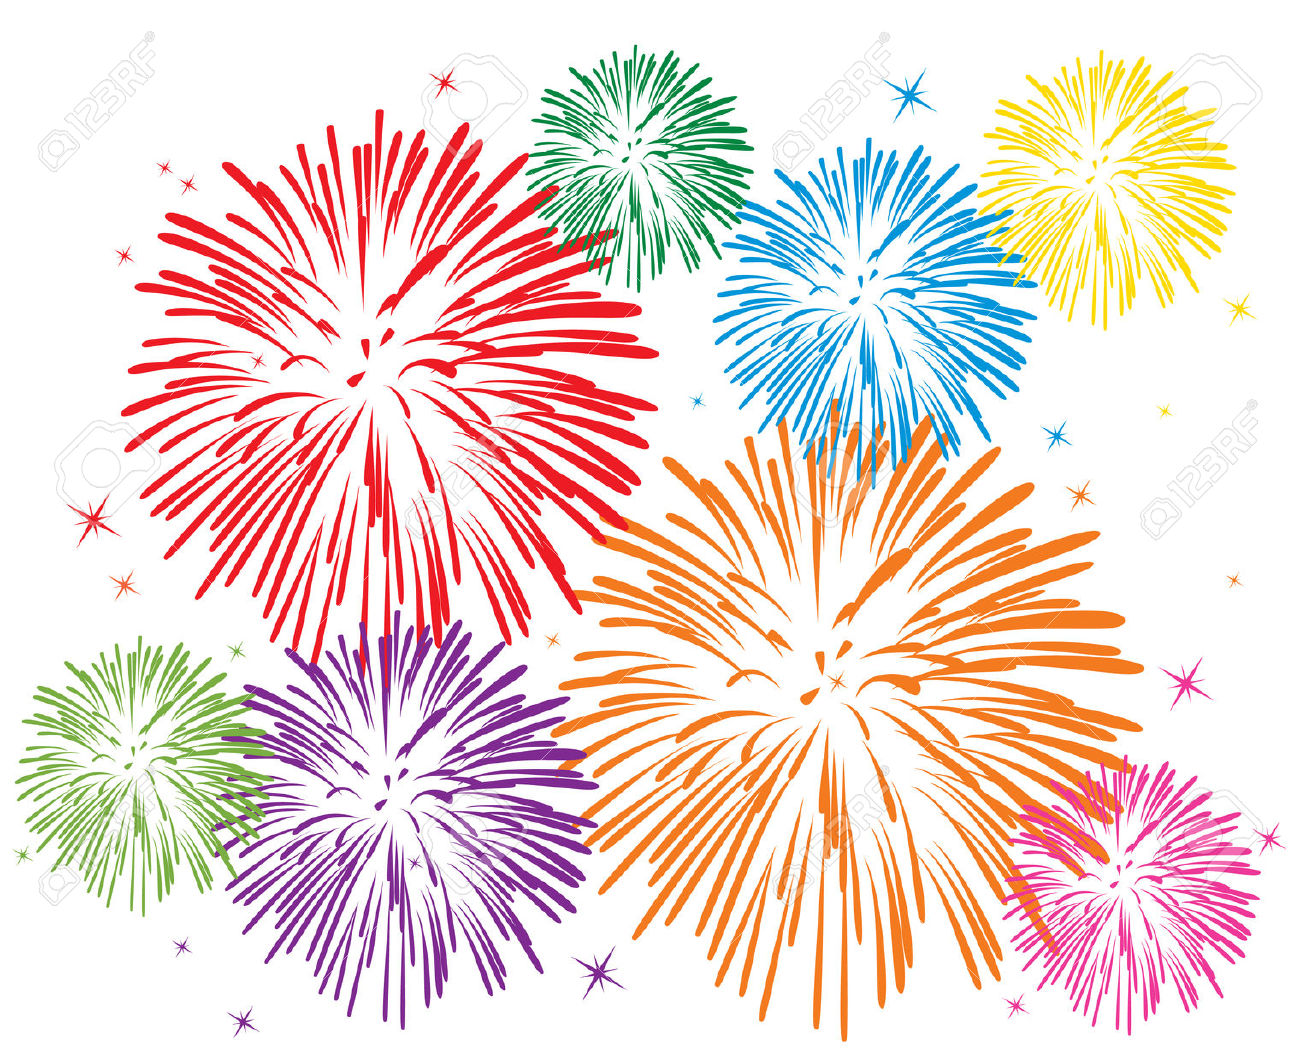 hight resolution of fireworks clipart 6726